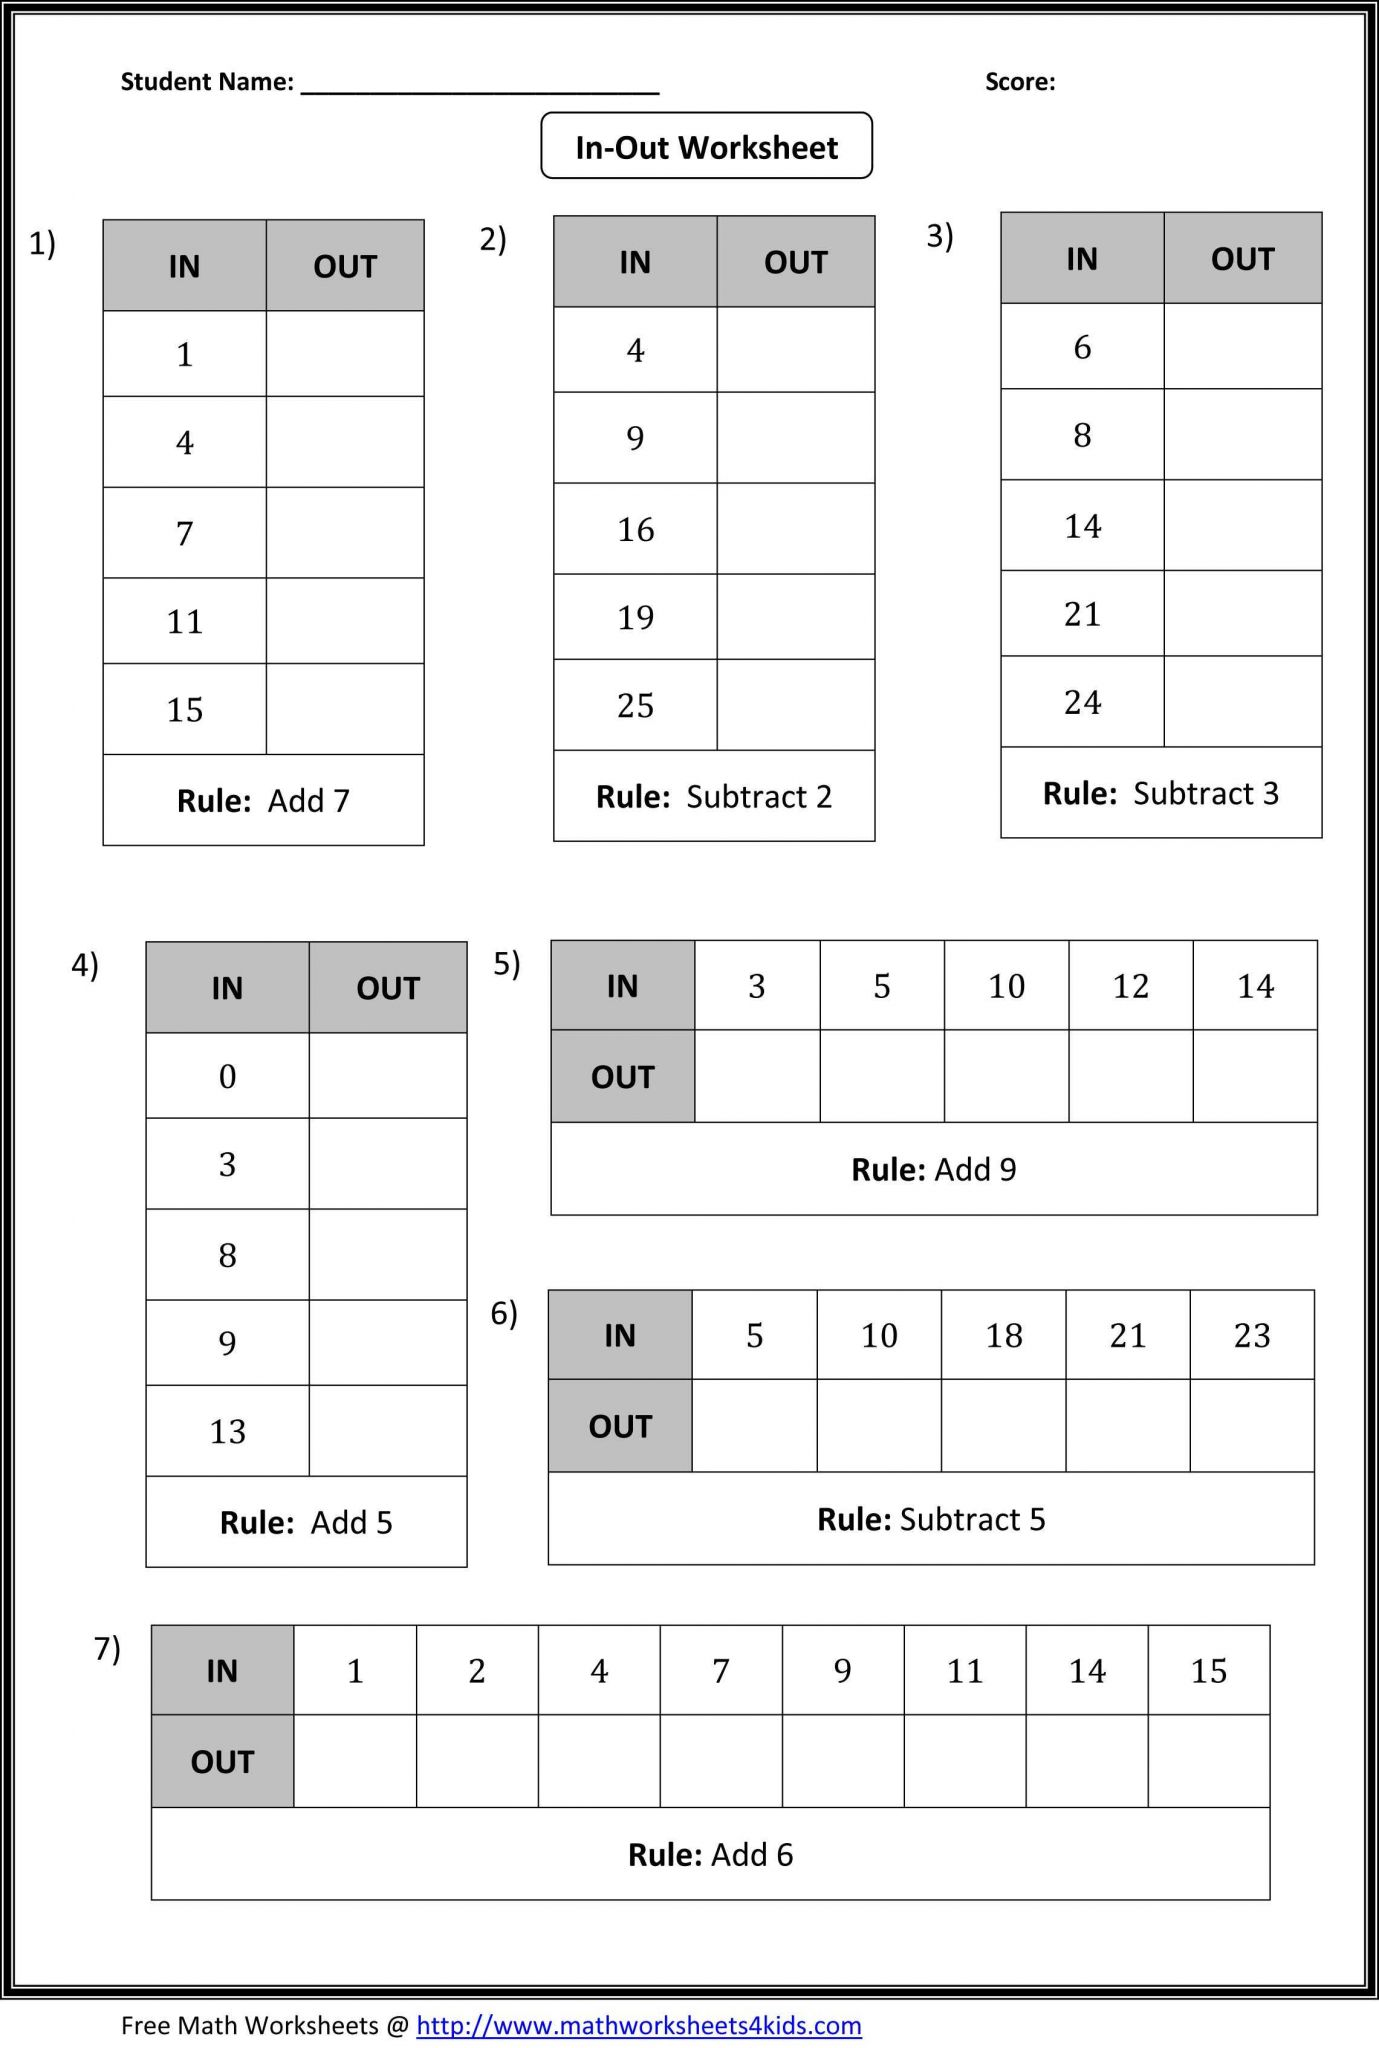 Multiplying Decimals by whole Numbers Worksheet Also Subtractions Addingting Multiplying and Dividing Integers